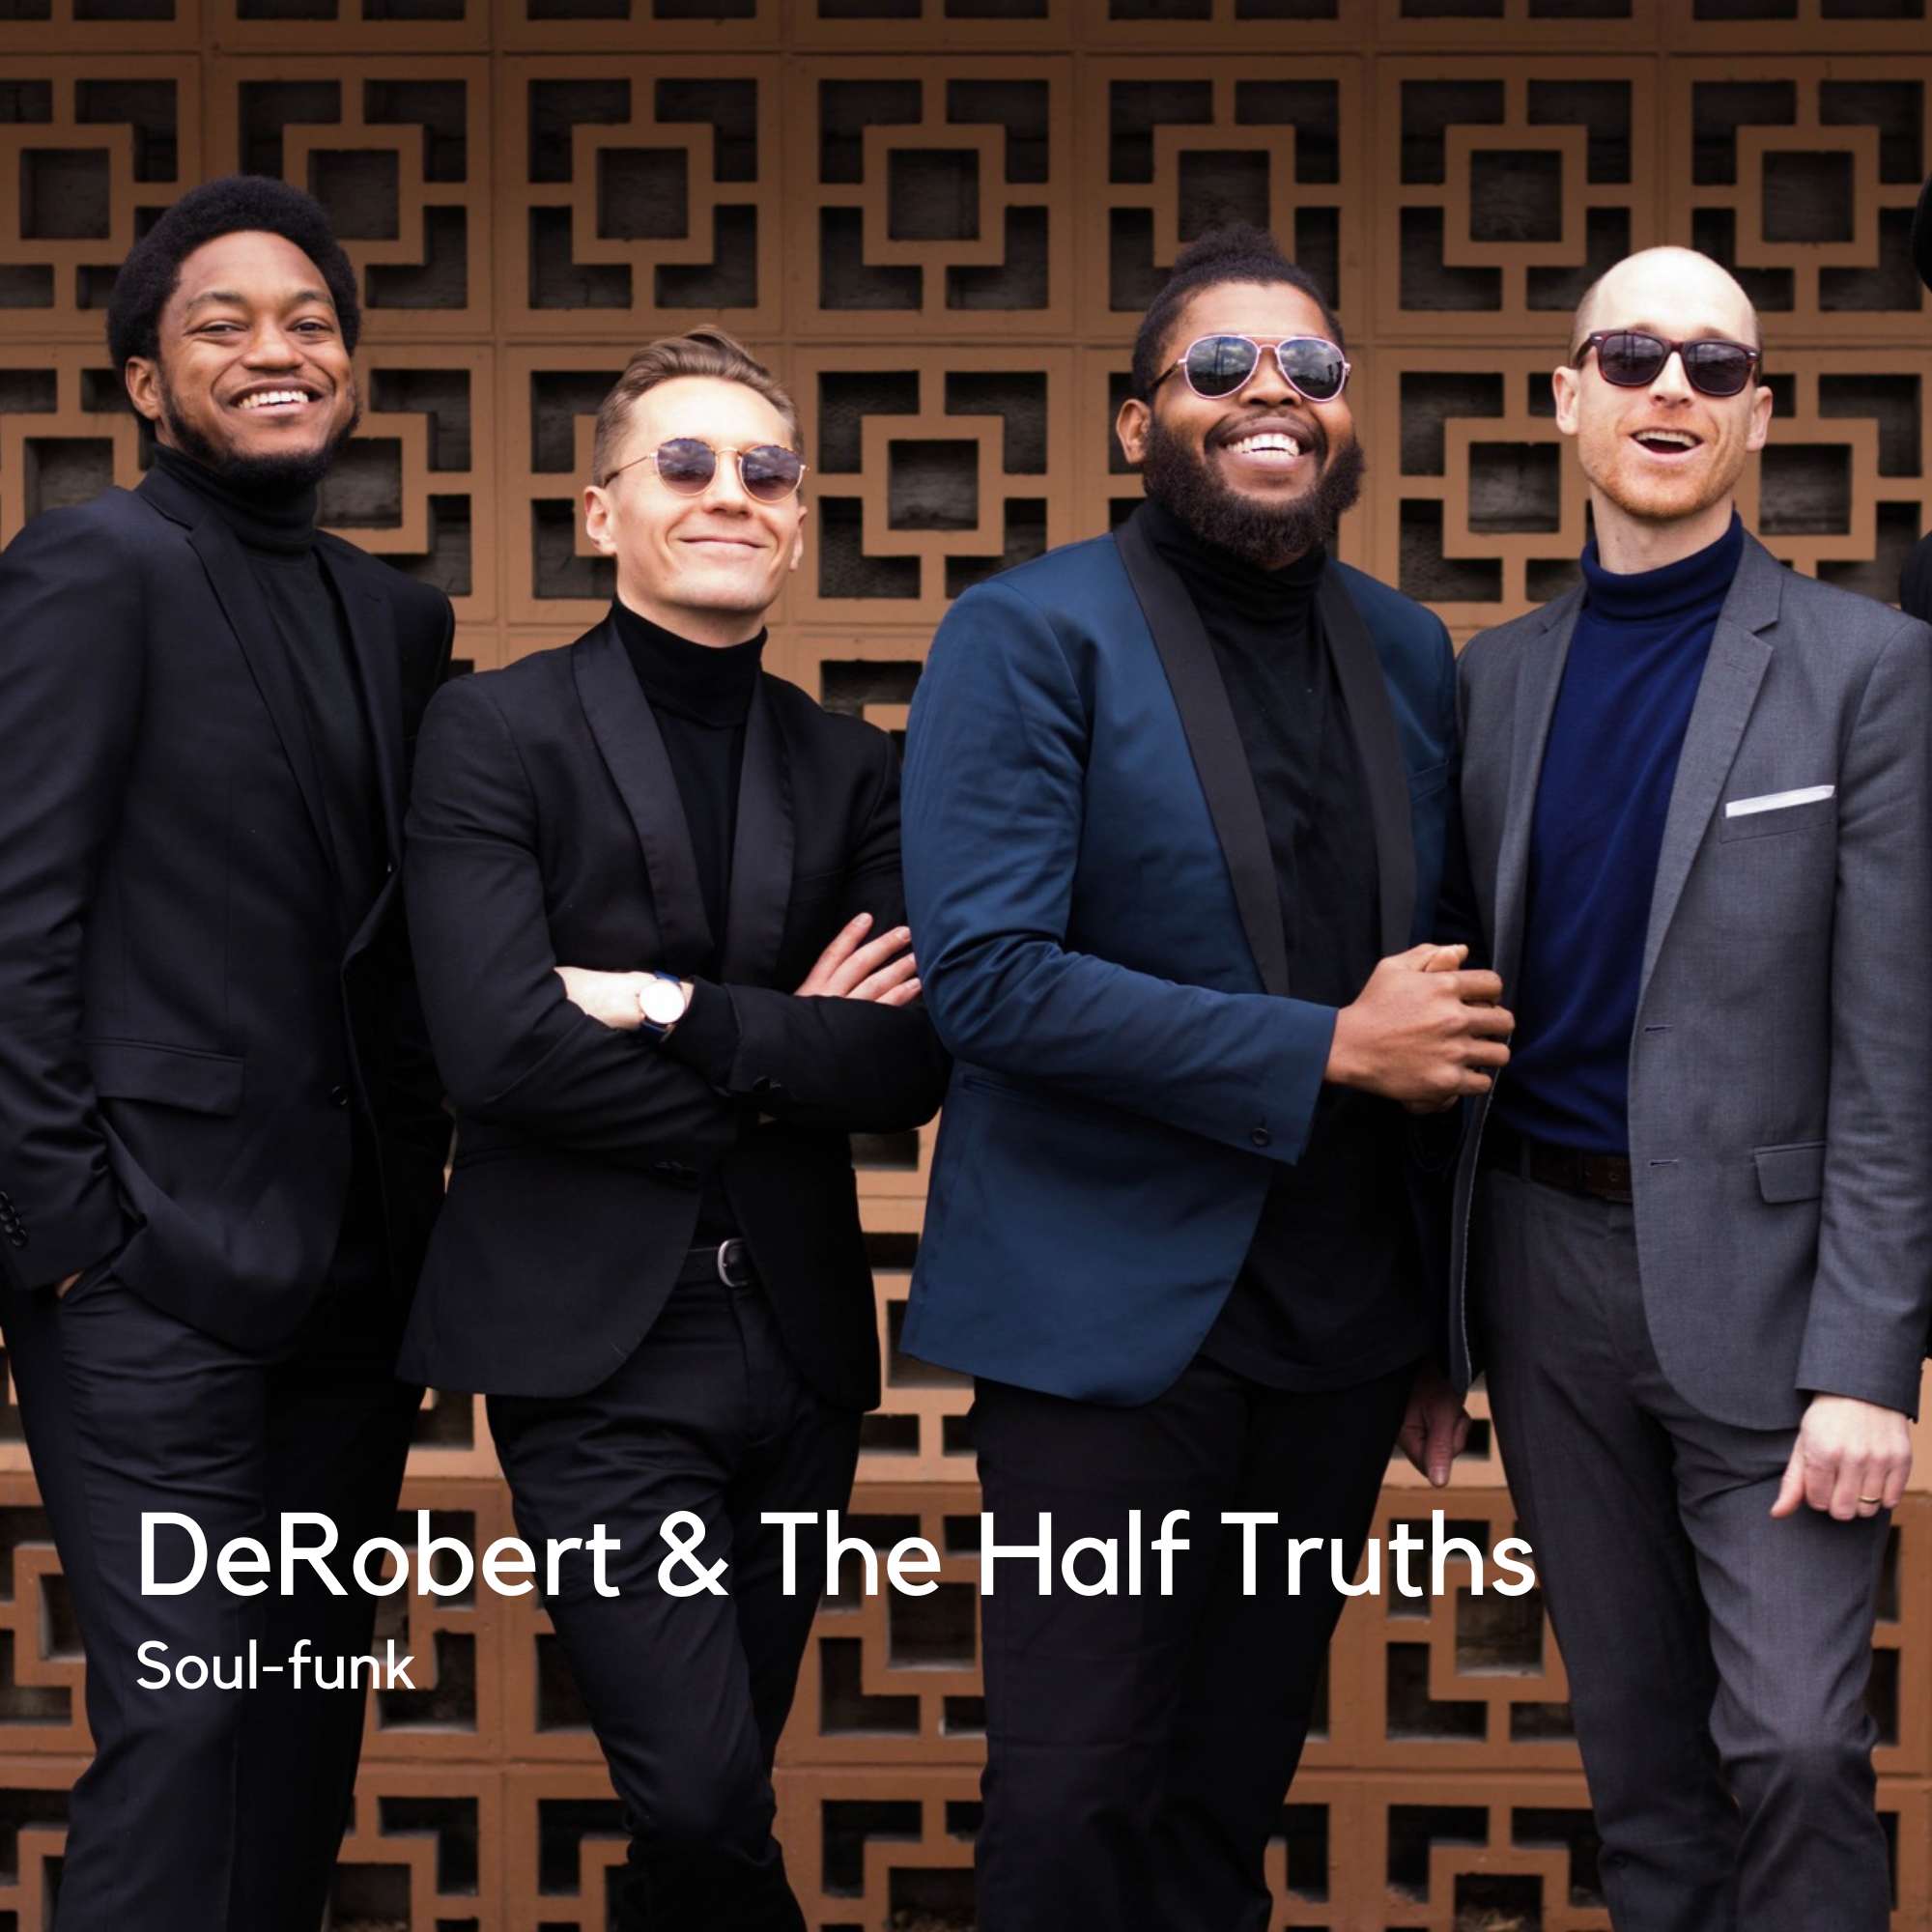 DeRobert & The Half Truths